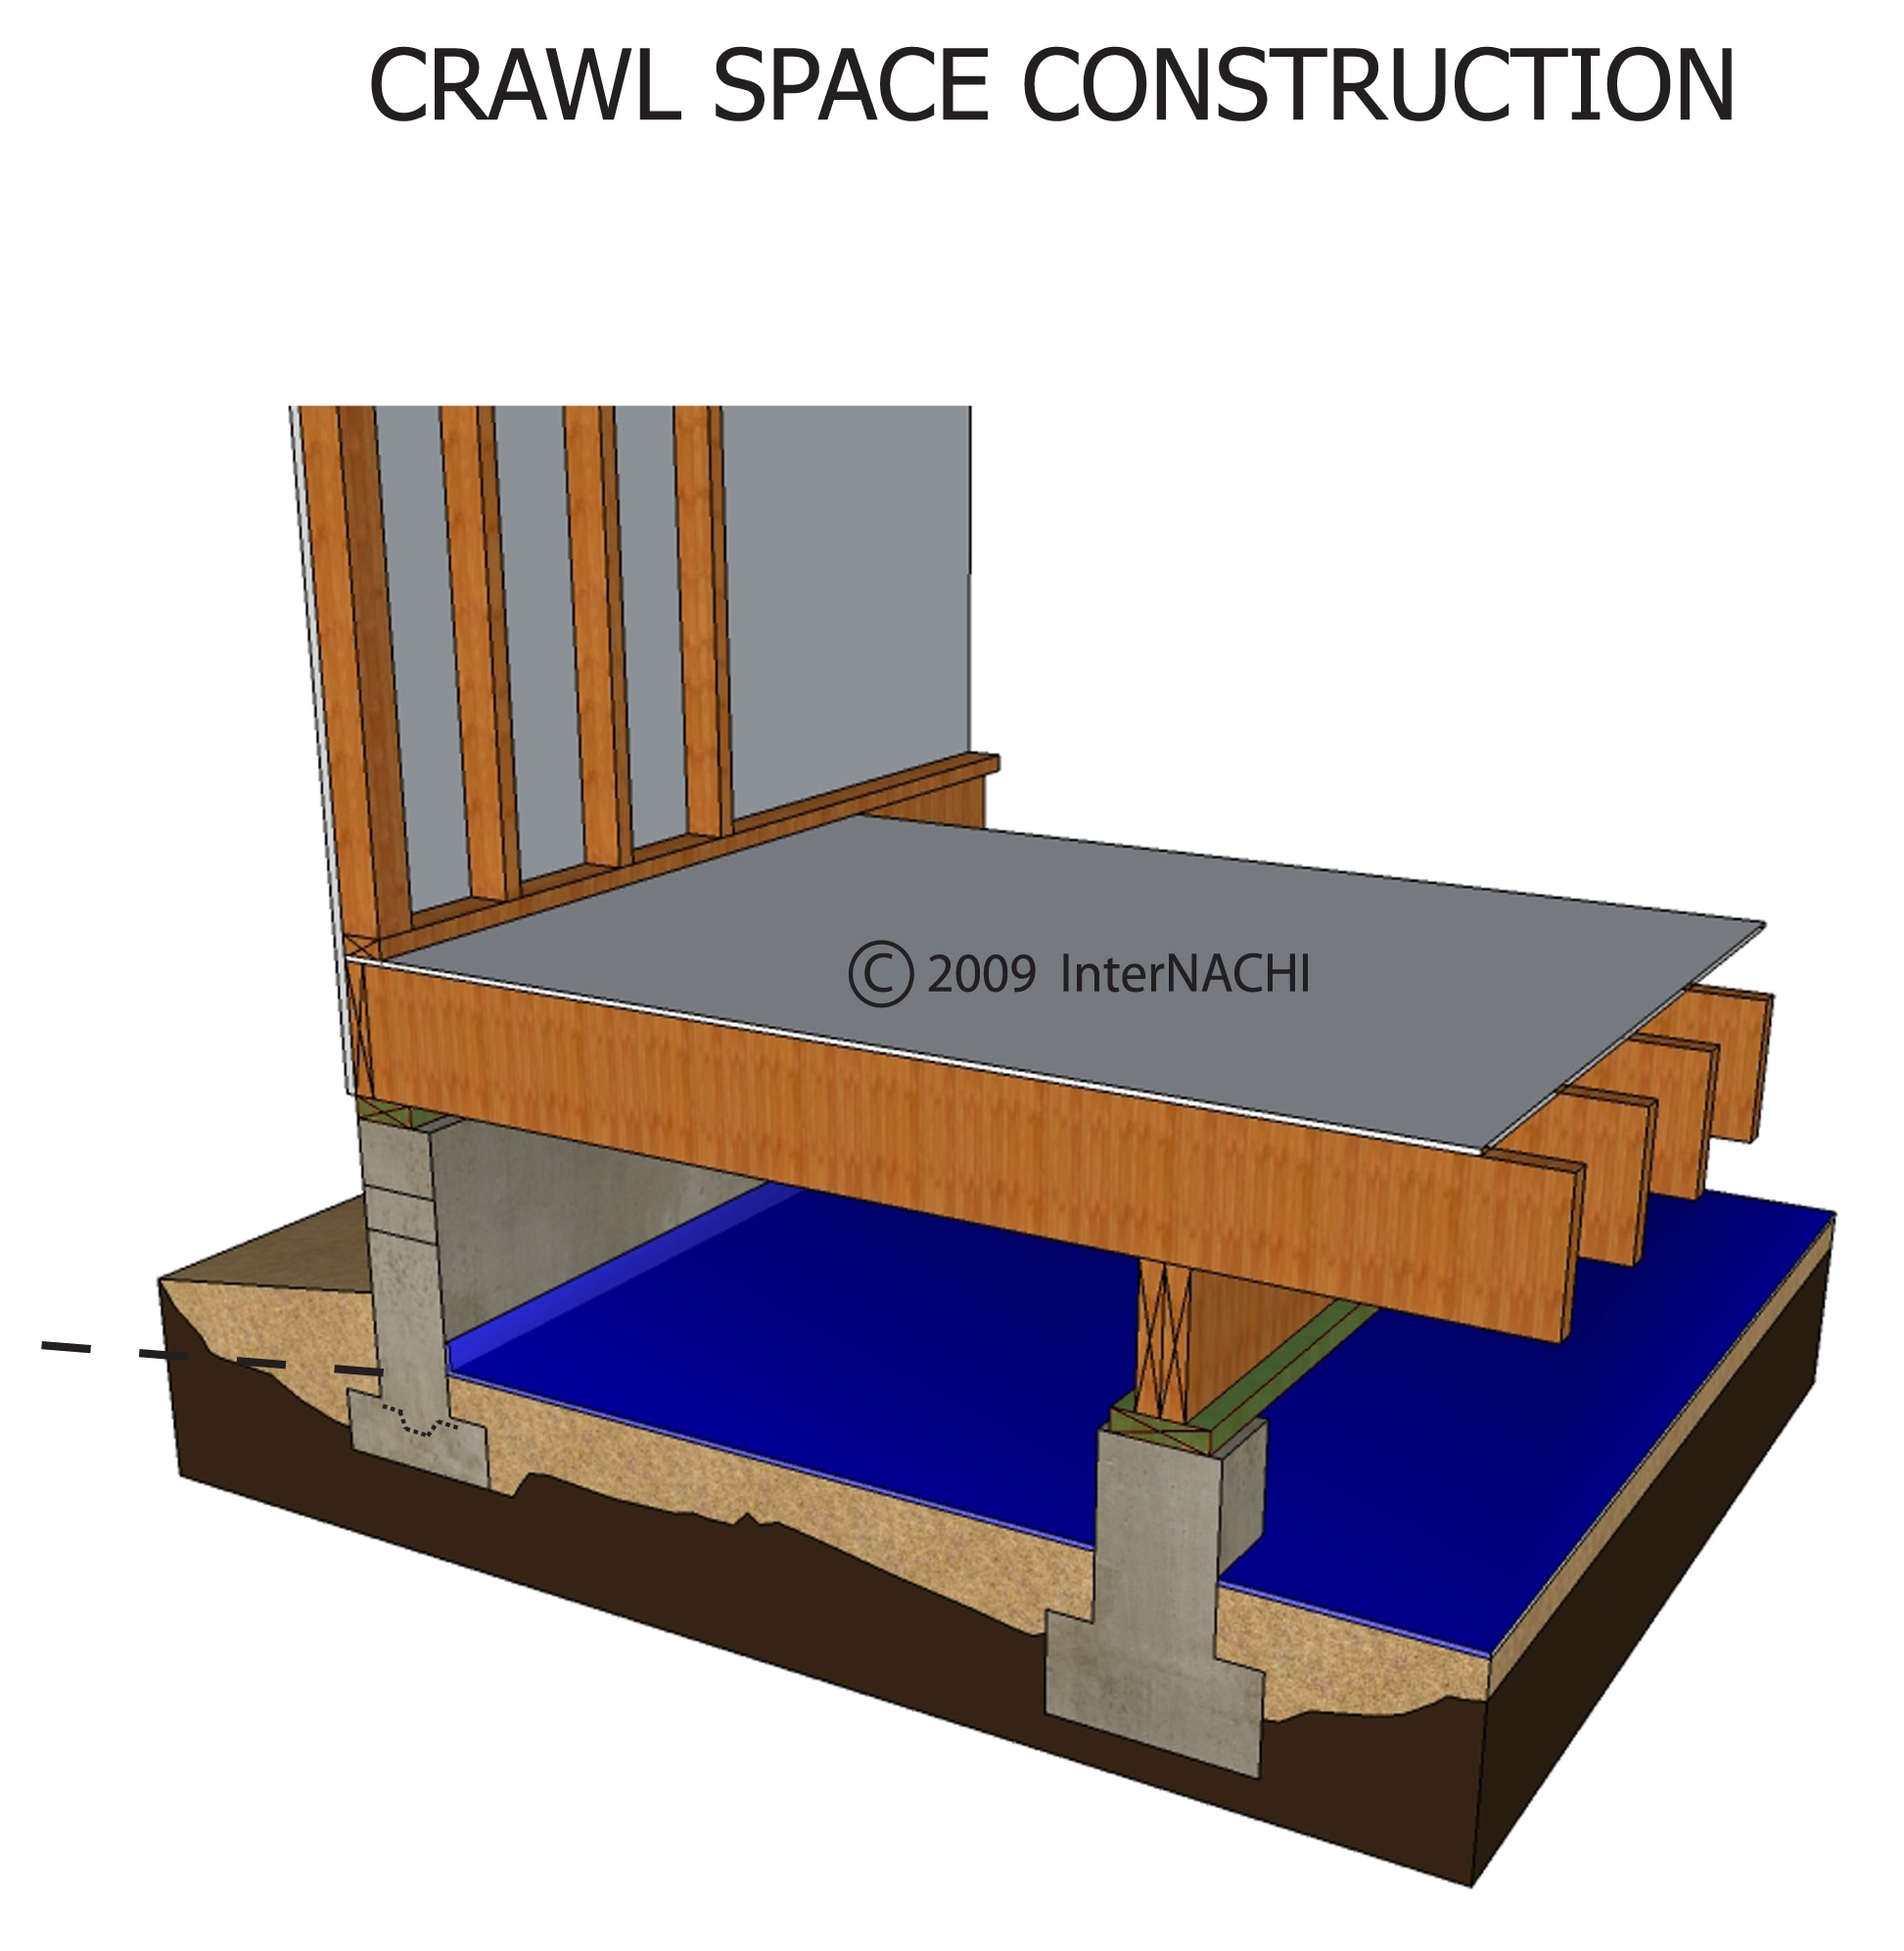 Crawl space construction.